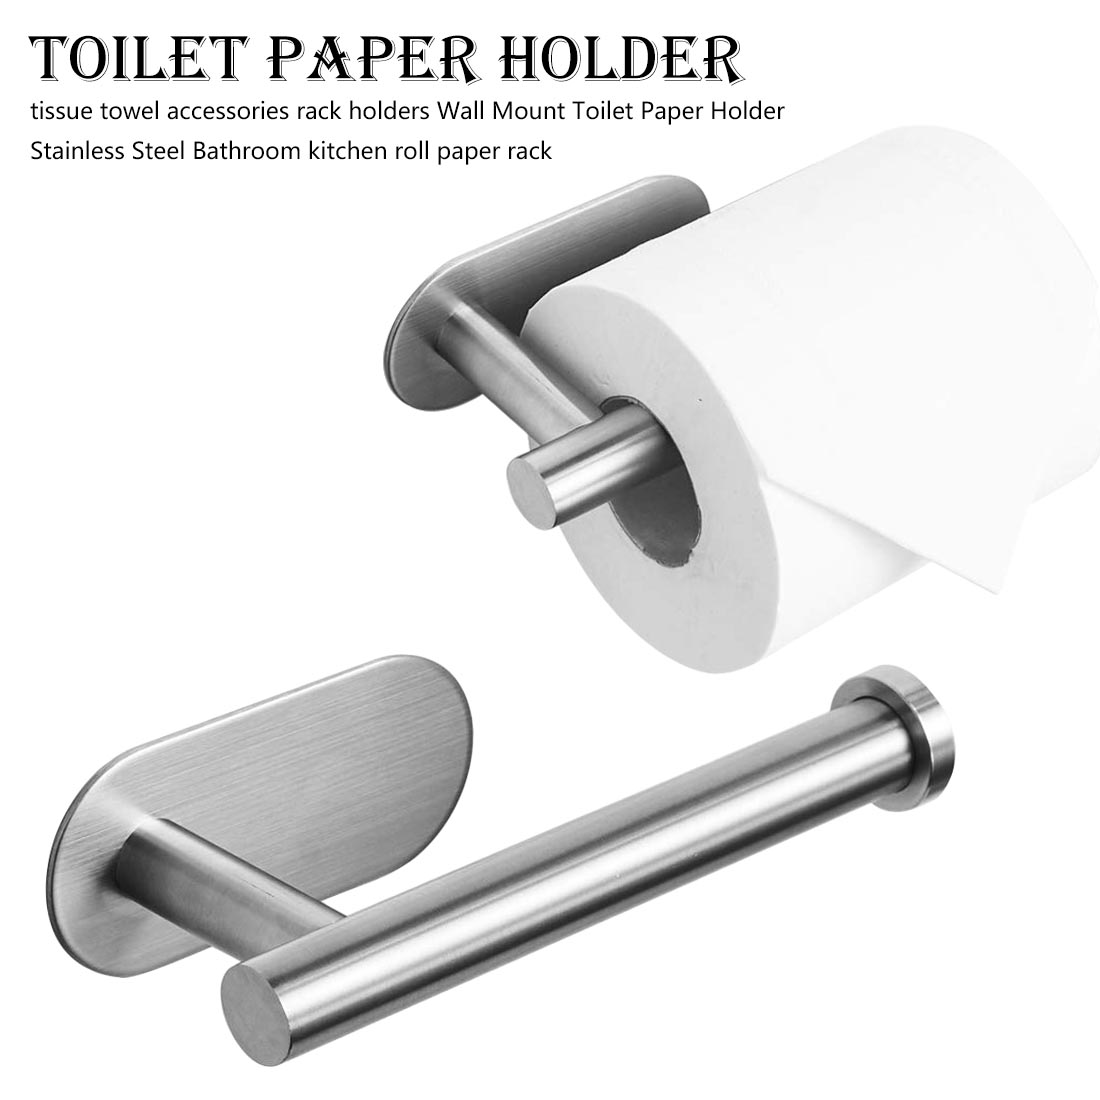 Wall Mount Toilet Paper Holder Stainless Steel Bathroom Kitchen Roll Paper Rack Tissue Towel Accessories Rack Holders